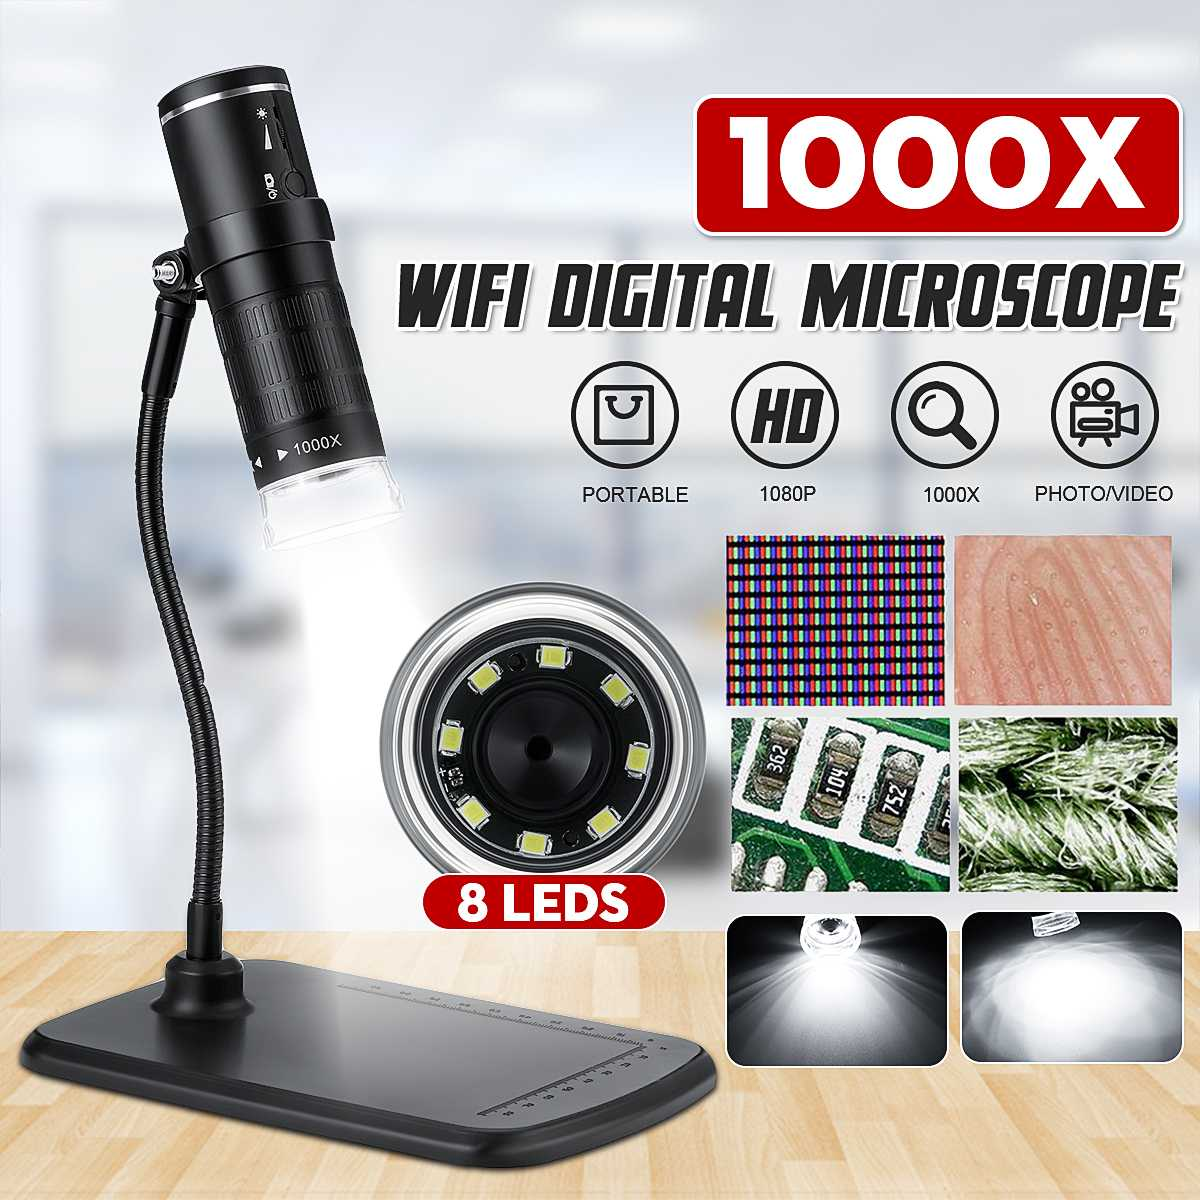 1000x 2MP Handheld WiFi Digital Microscope Portable HD 1080P USB Microscope Camera with Snake-Tube-Bracket SwitchFor IOS Android